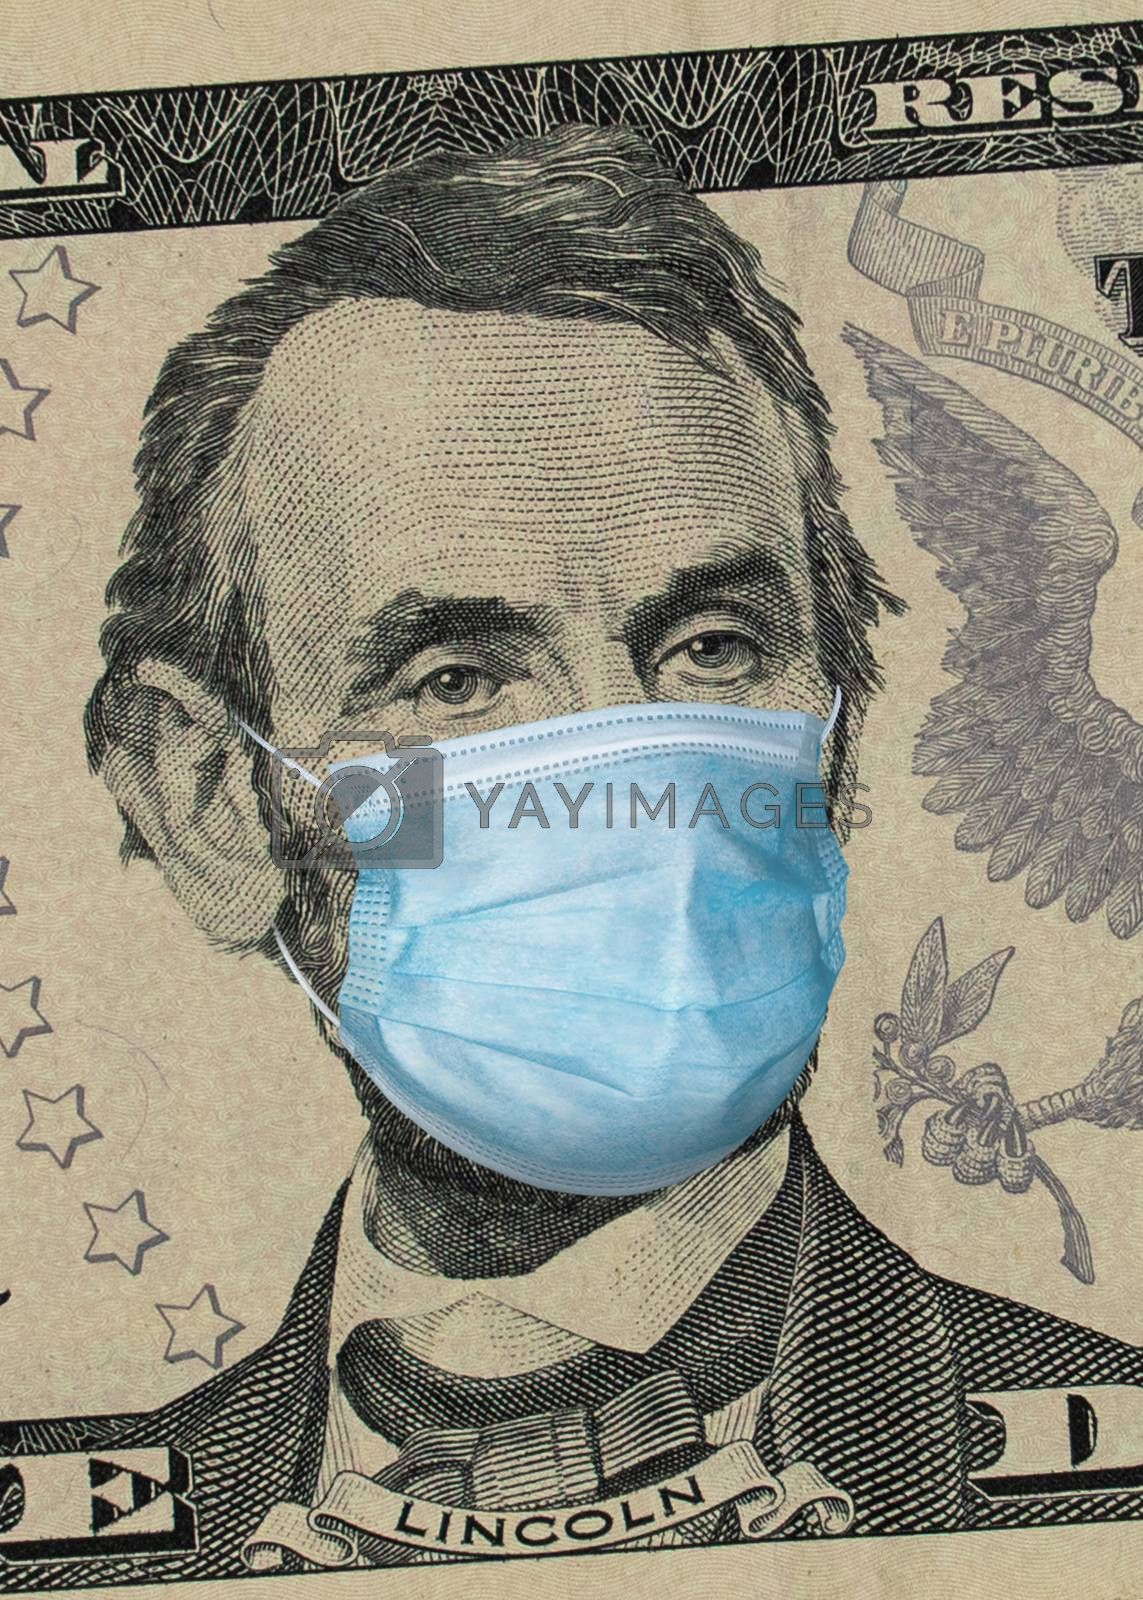 Five dollars banknote with Lincoln in a medical mask. Global financial and economic crisis has affected USA. American money, coronavirus concept. COVID-19 coronavirus in America.